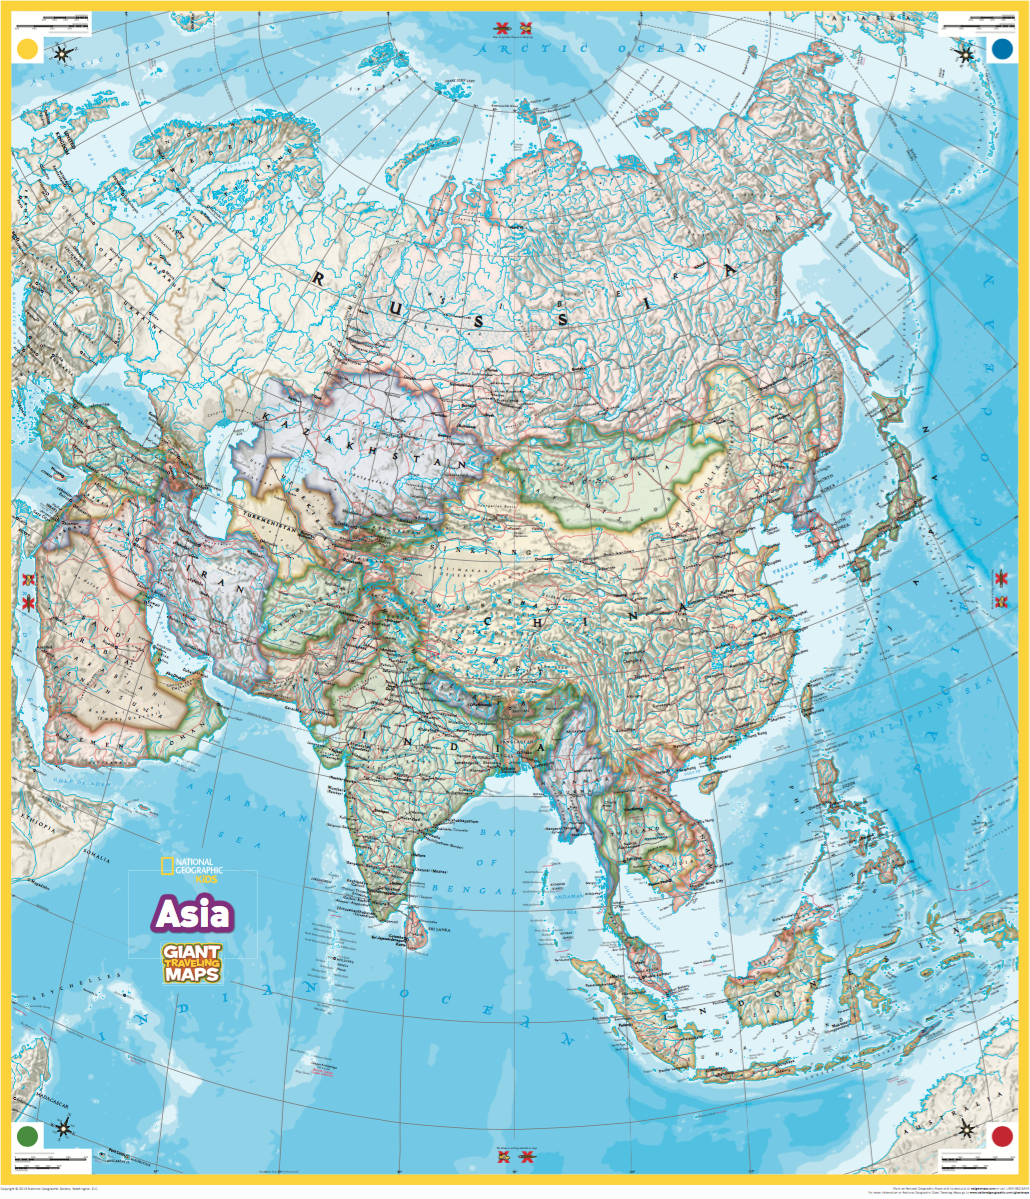 Giant Traveling Maps Asia National Geographic Society – National Geographic Travel Map